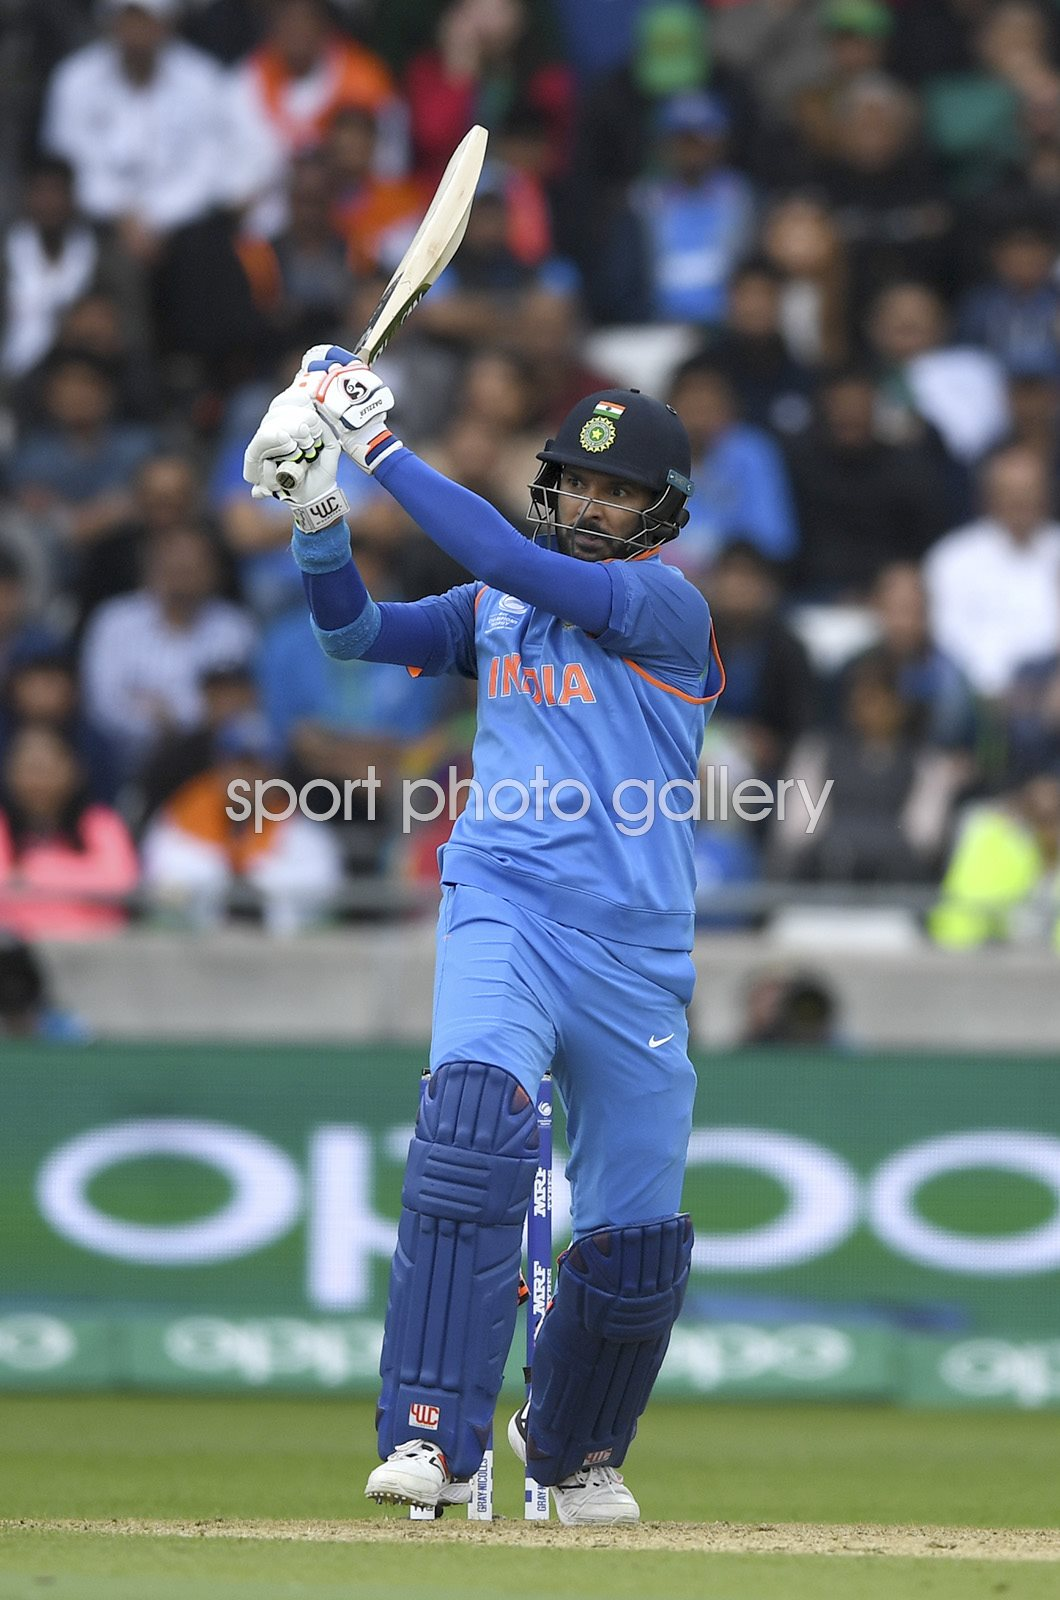 Yuvraj Singh India v Pakistan Champions Trophy Edgbaston 2017